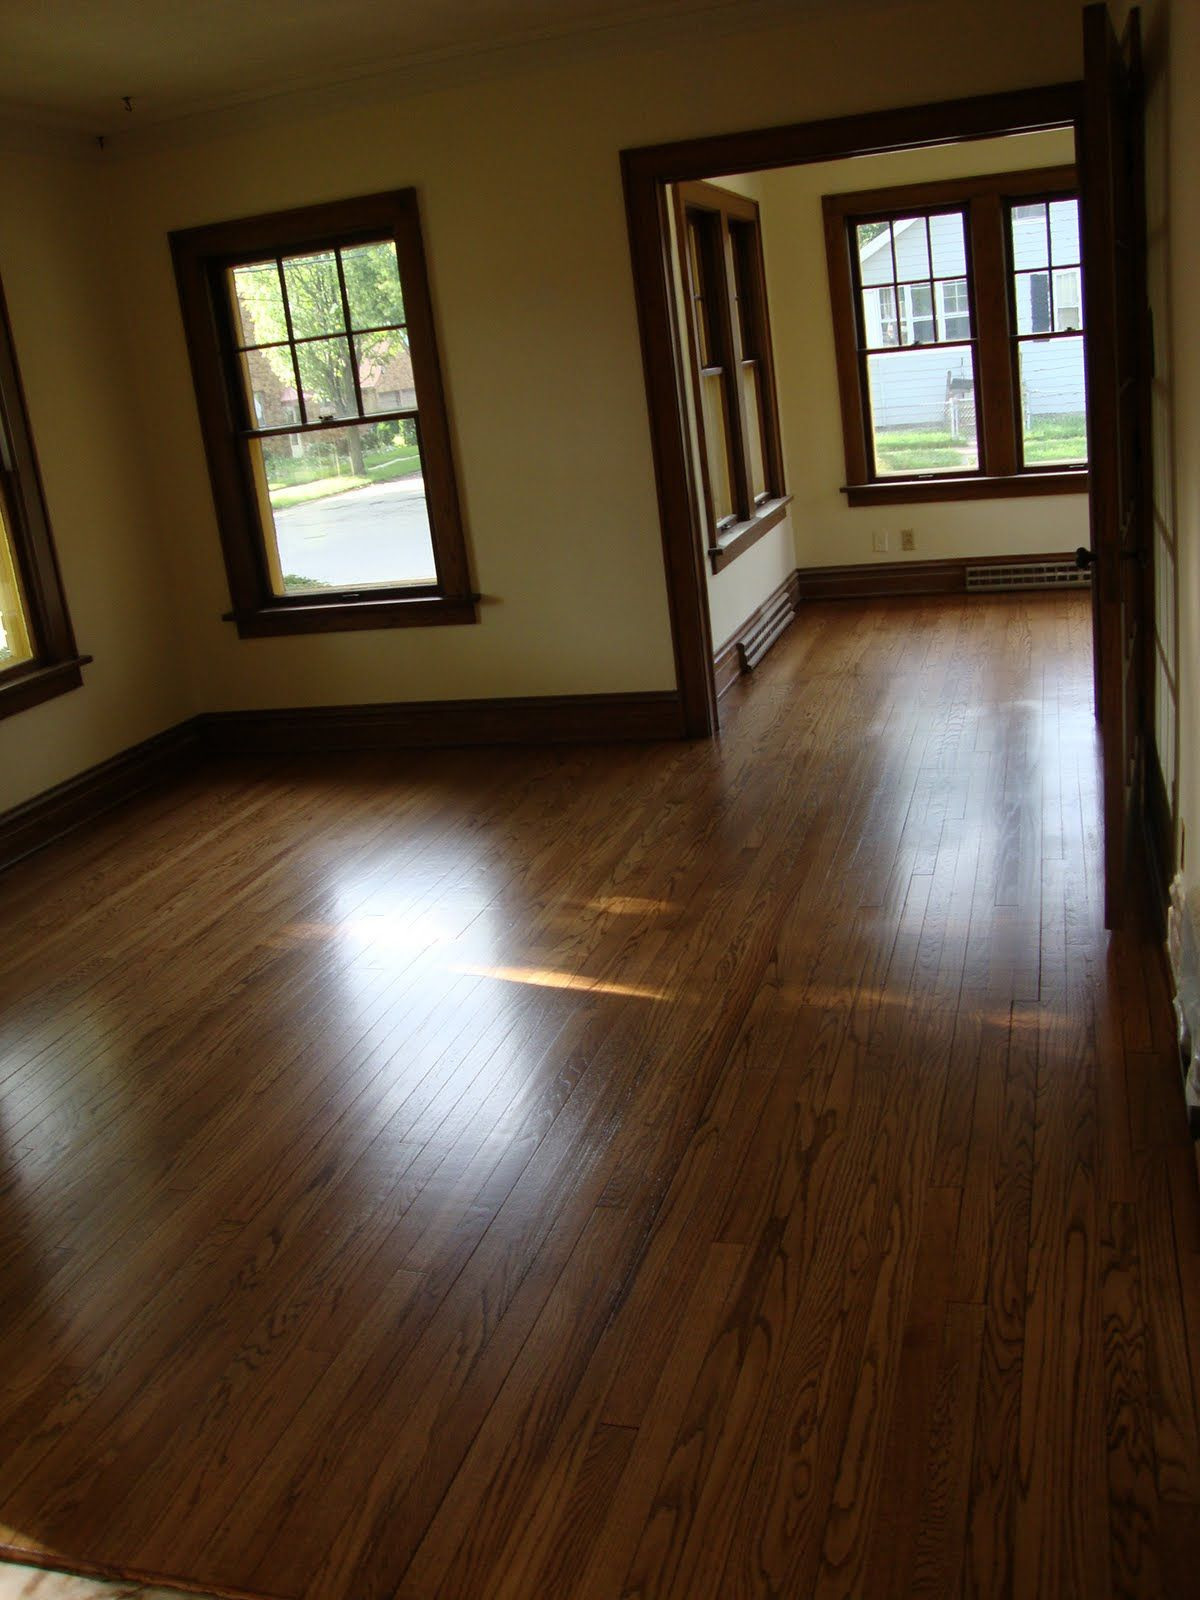 30 Popular Light Hardwood Floors Wall Color 2021 free download light hardwood floors wall color of how to get paint off wood floors floor within how to get paint off wood floors dark wood trim with hardwood floors and lighter not